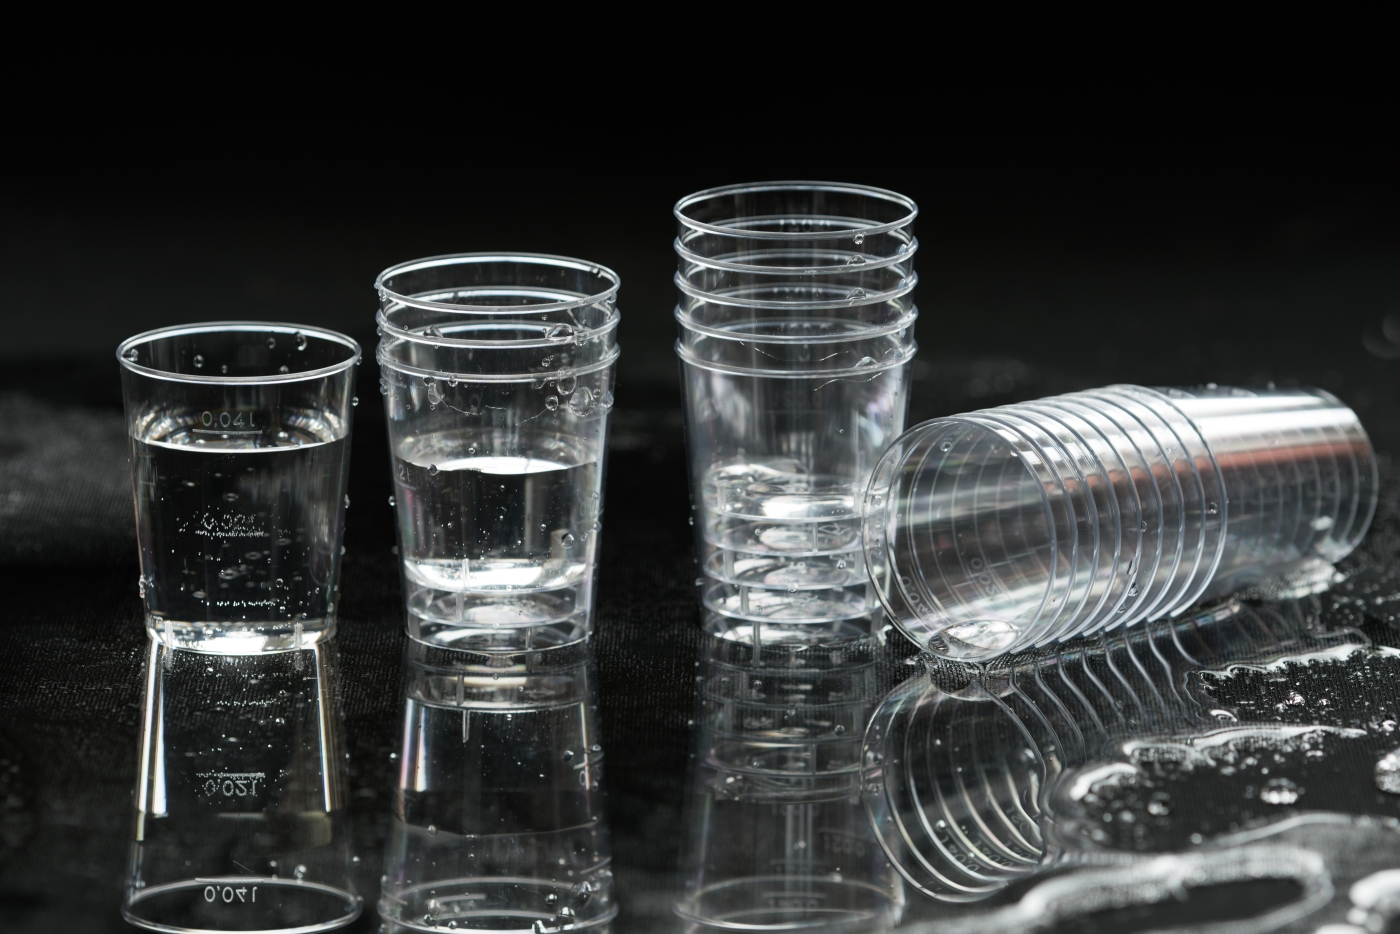 The disposable clear plastic cups to 40 ml with graduation to receive small portions of beverages water and other liquids. Close-up on a black background with blur cups in the background jet of water being poured into a glass pure water in the cup